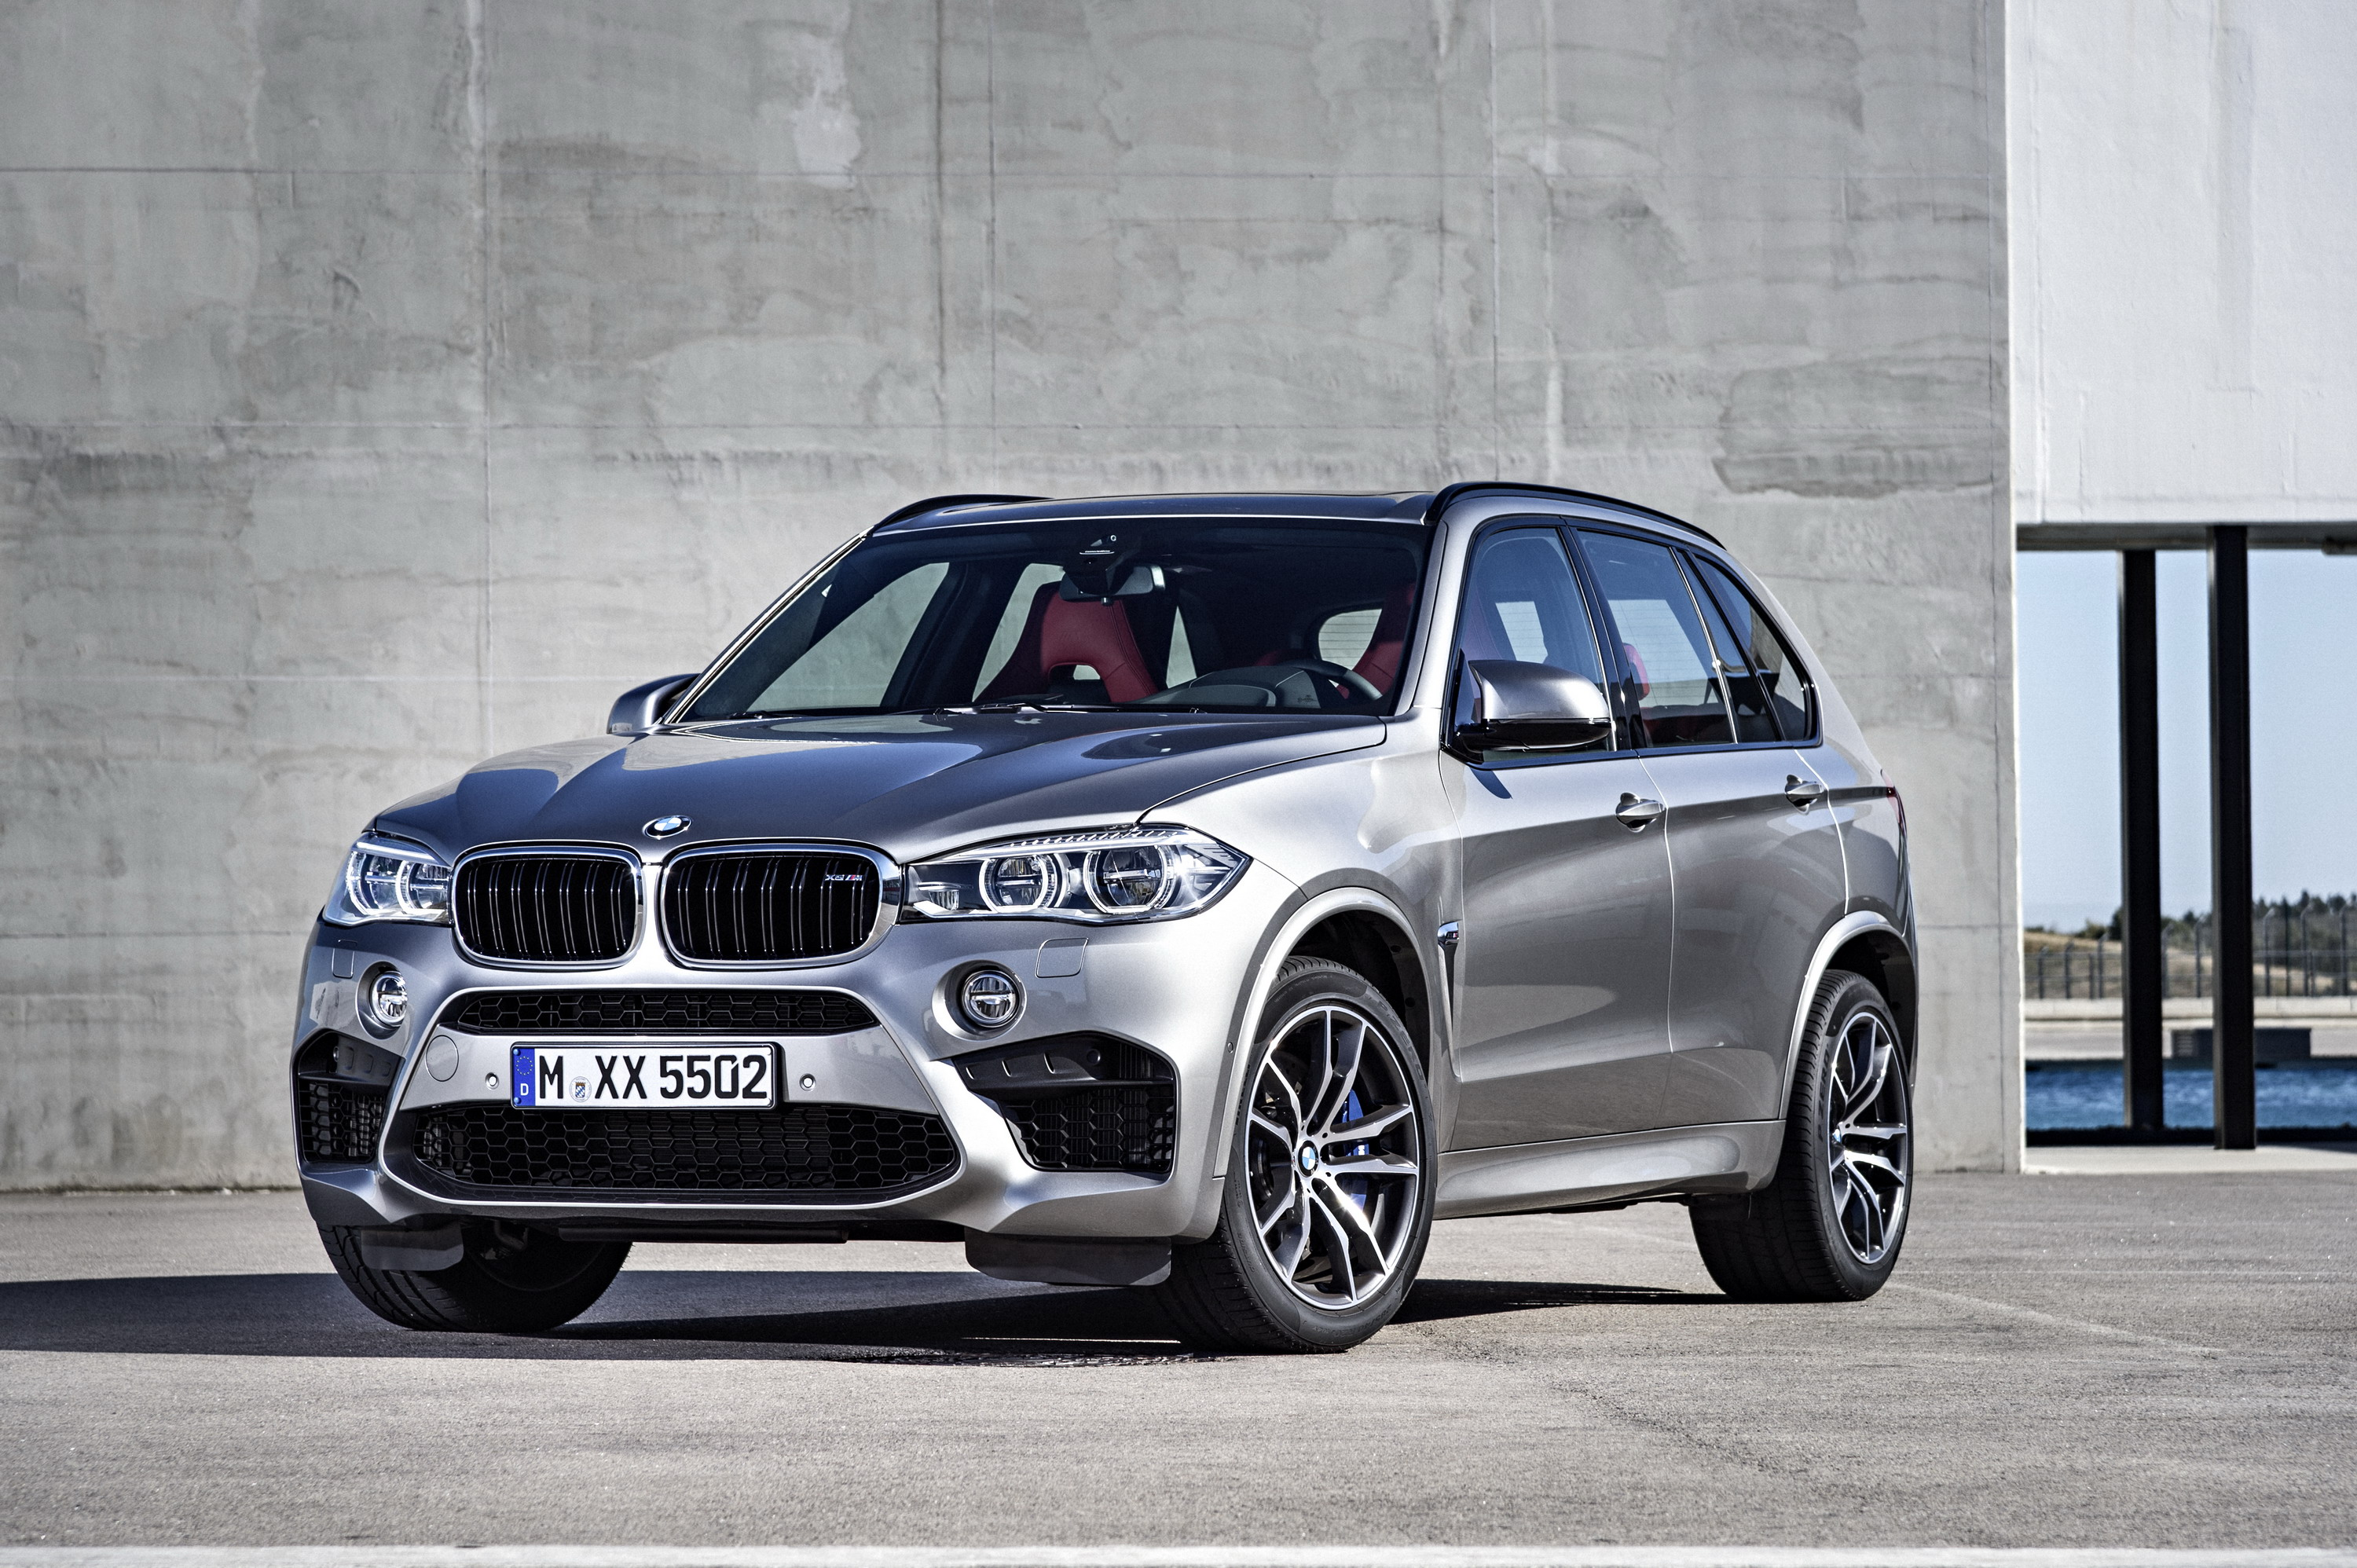 First Photos Of 2014 BMW X5 M Sport And M50d Plus Brochure